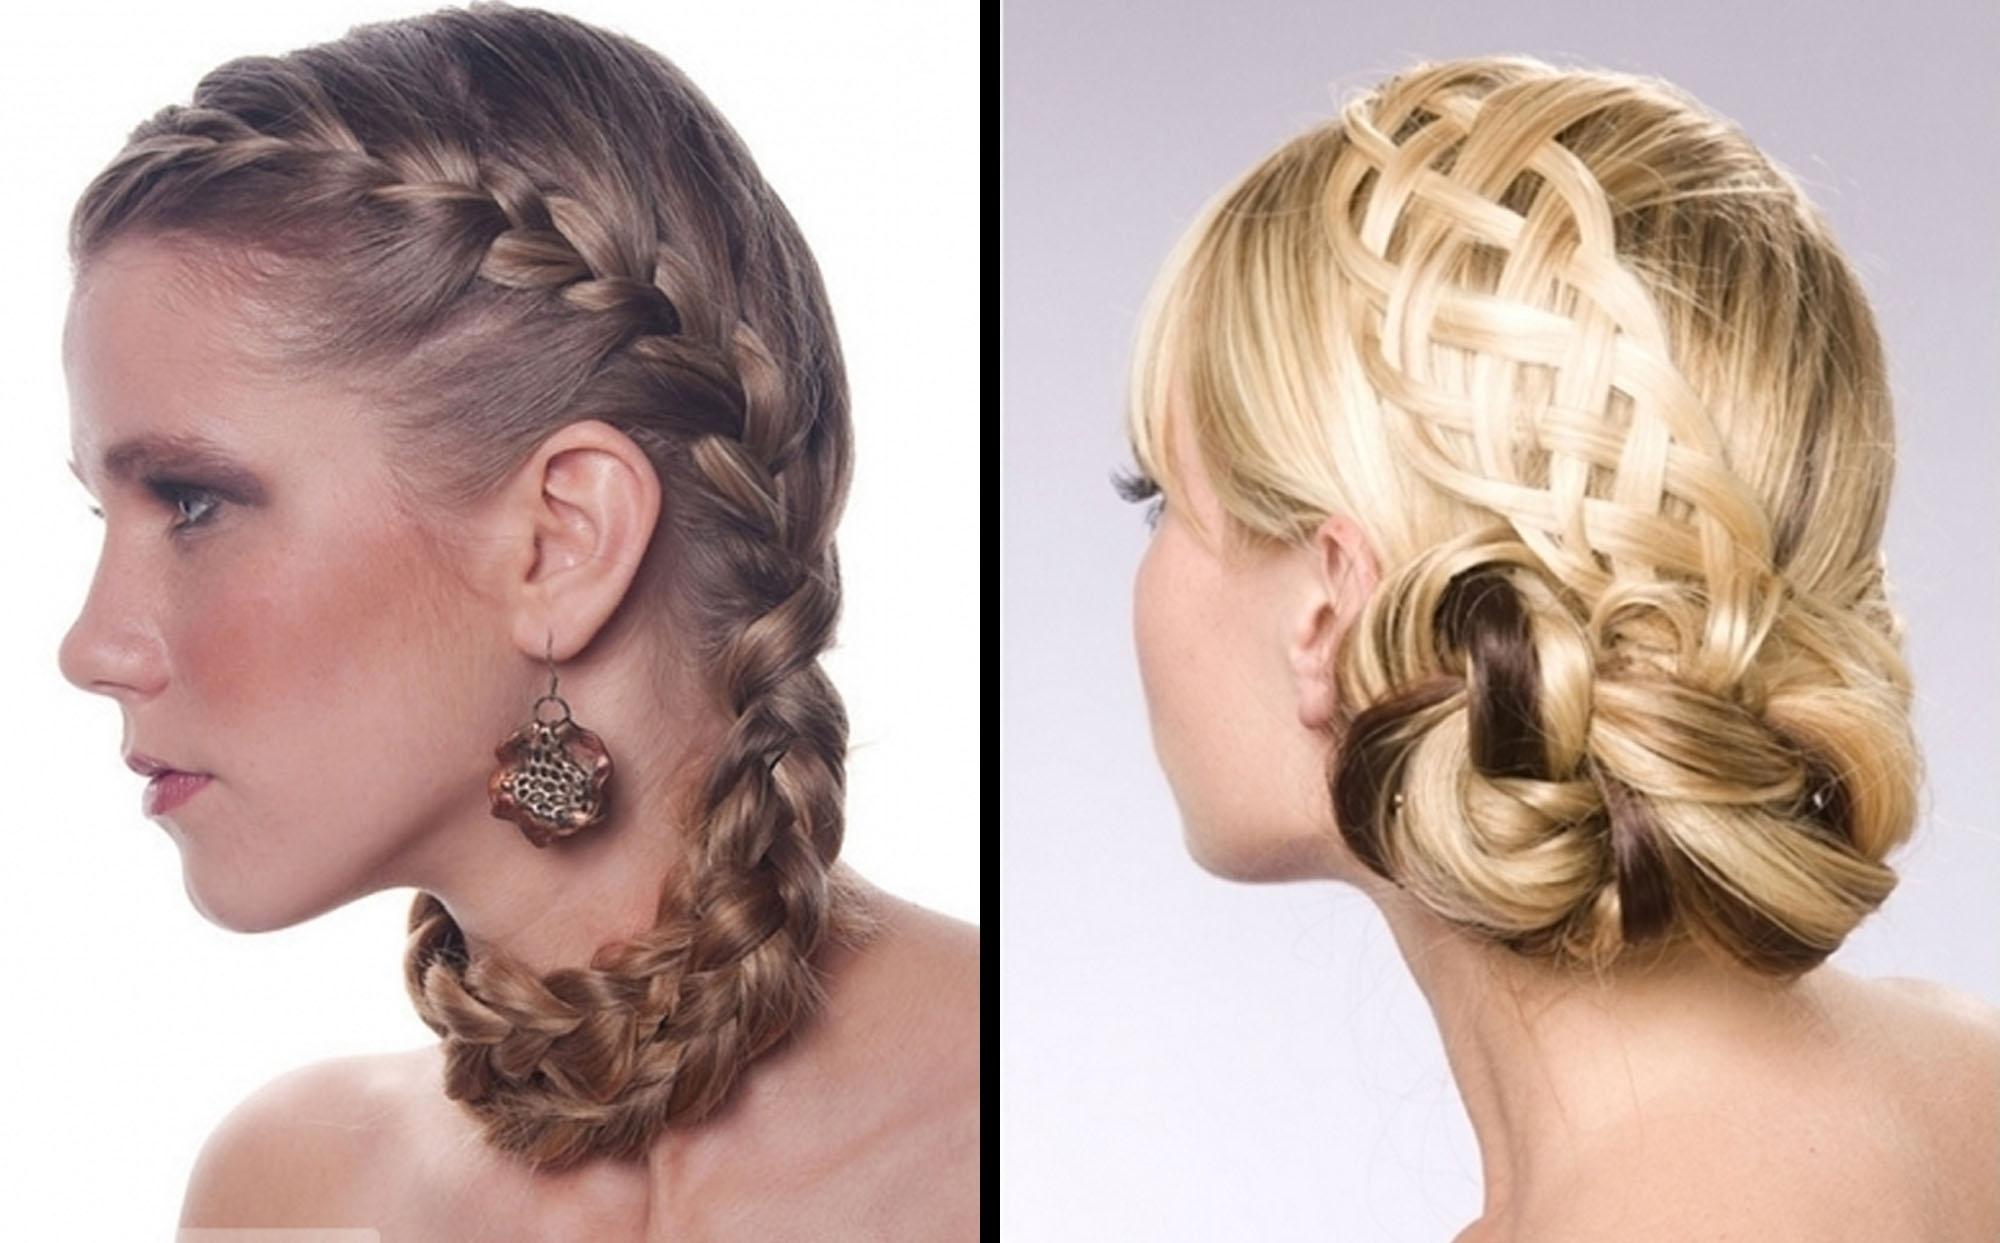 Braided Hairstyles (View 13 of 15)